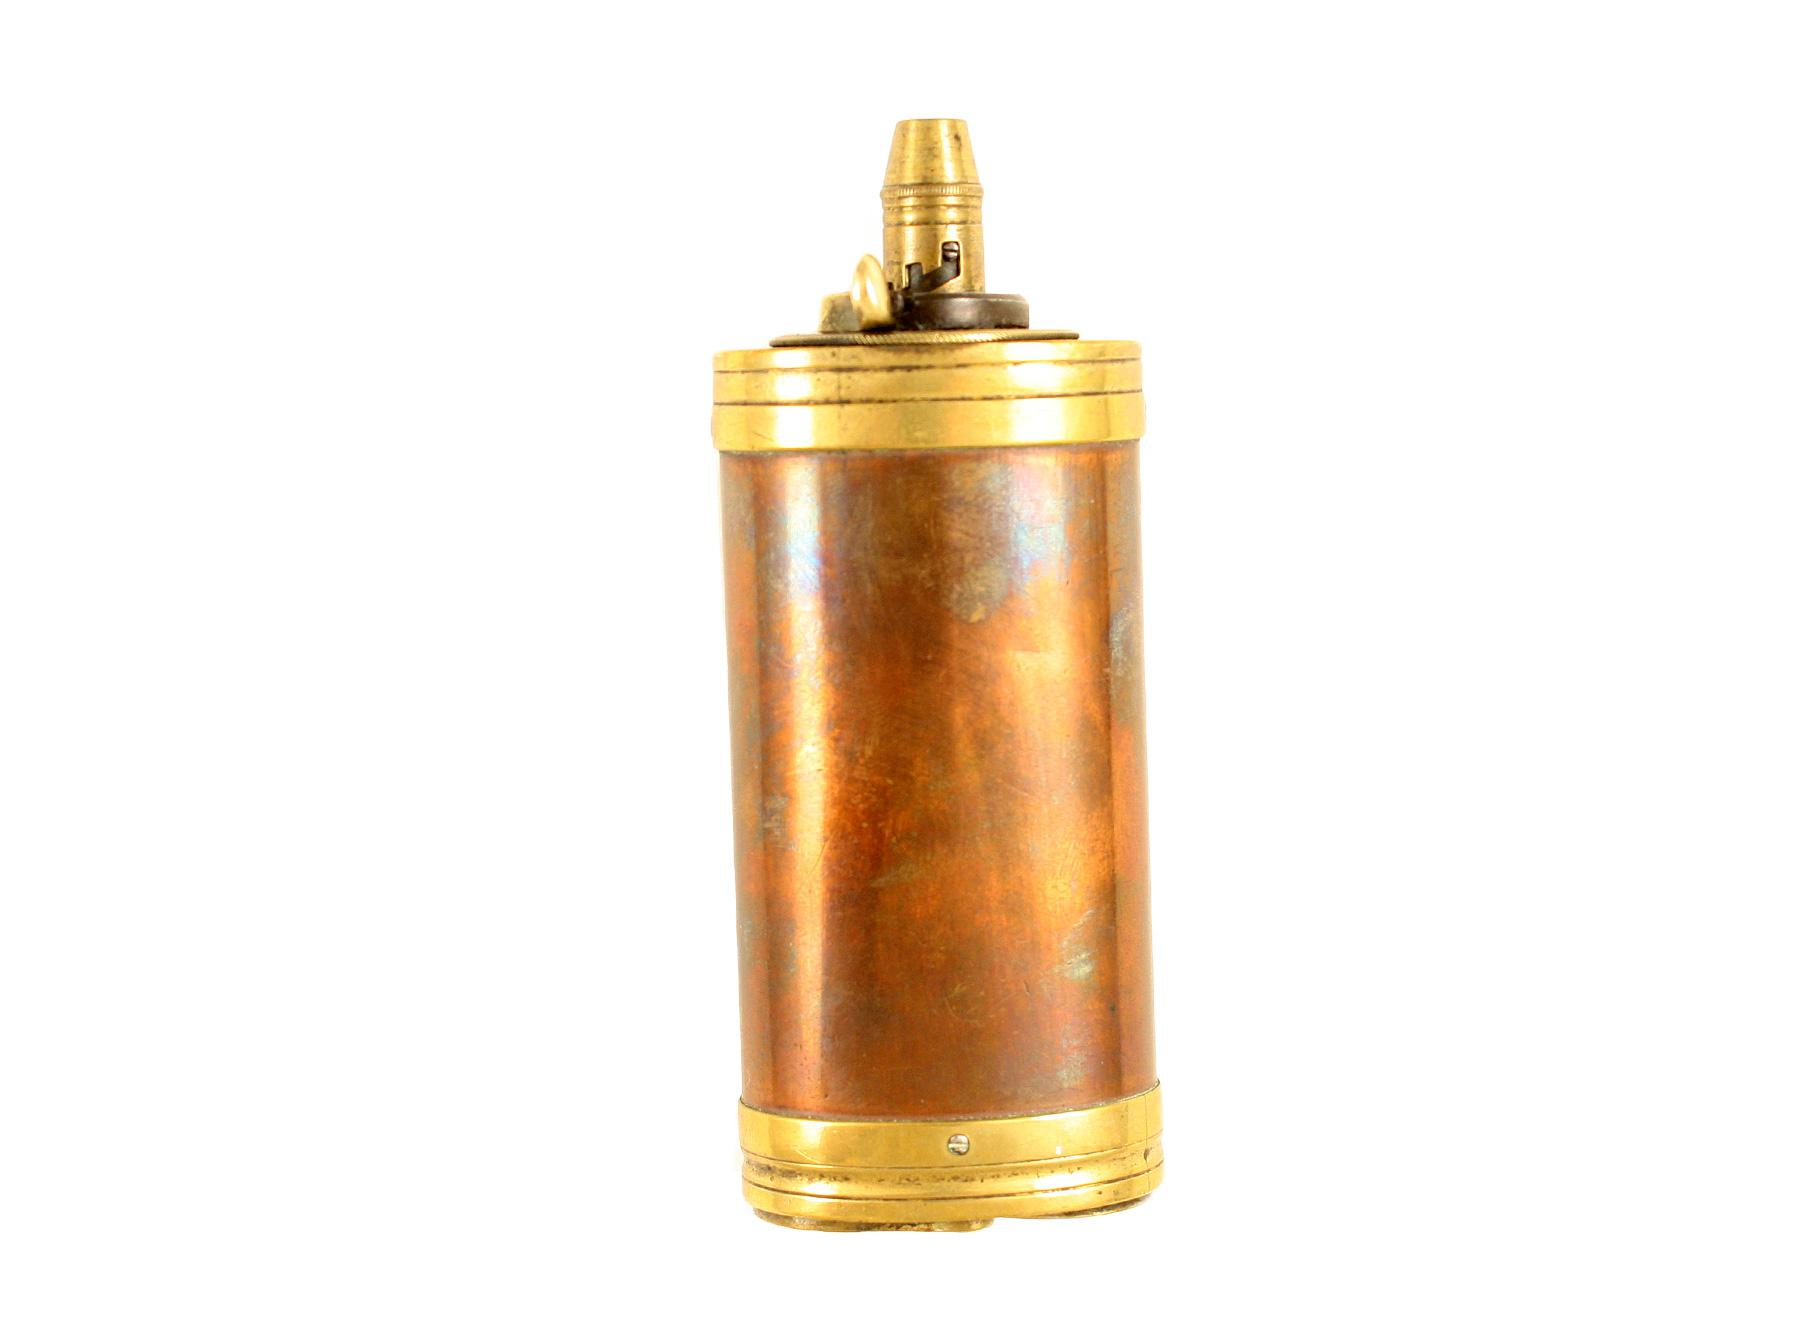 A Three-Way Pistol Flask by Dixon & Sons